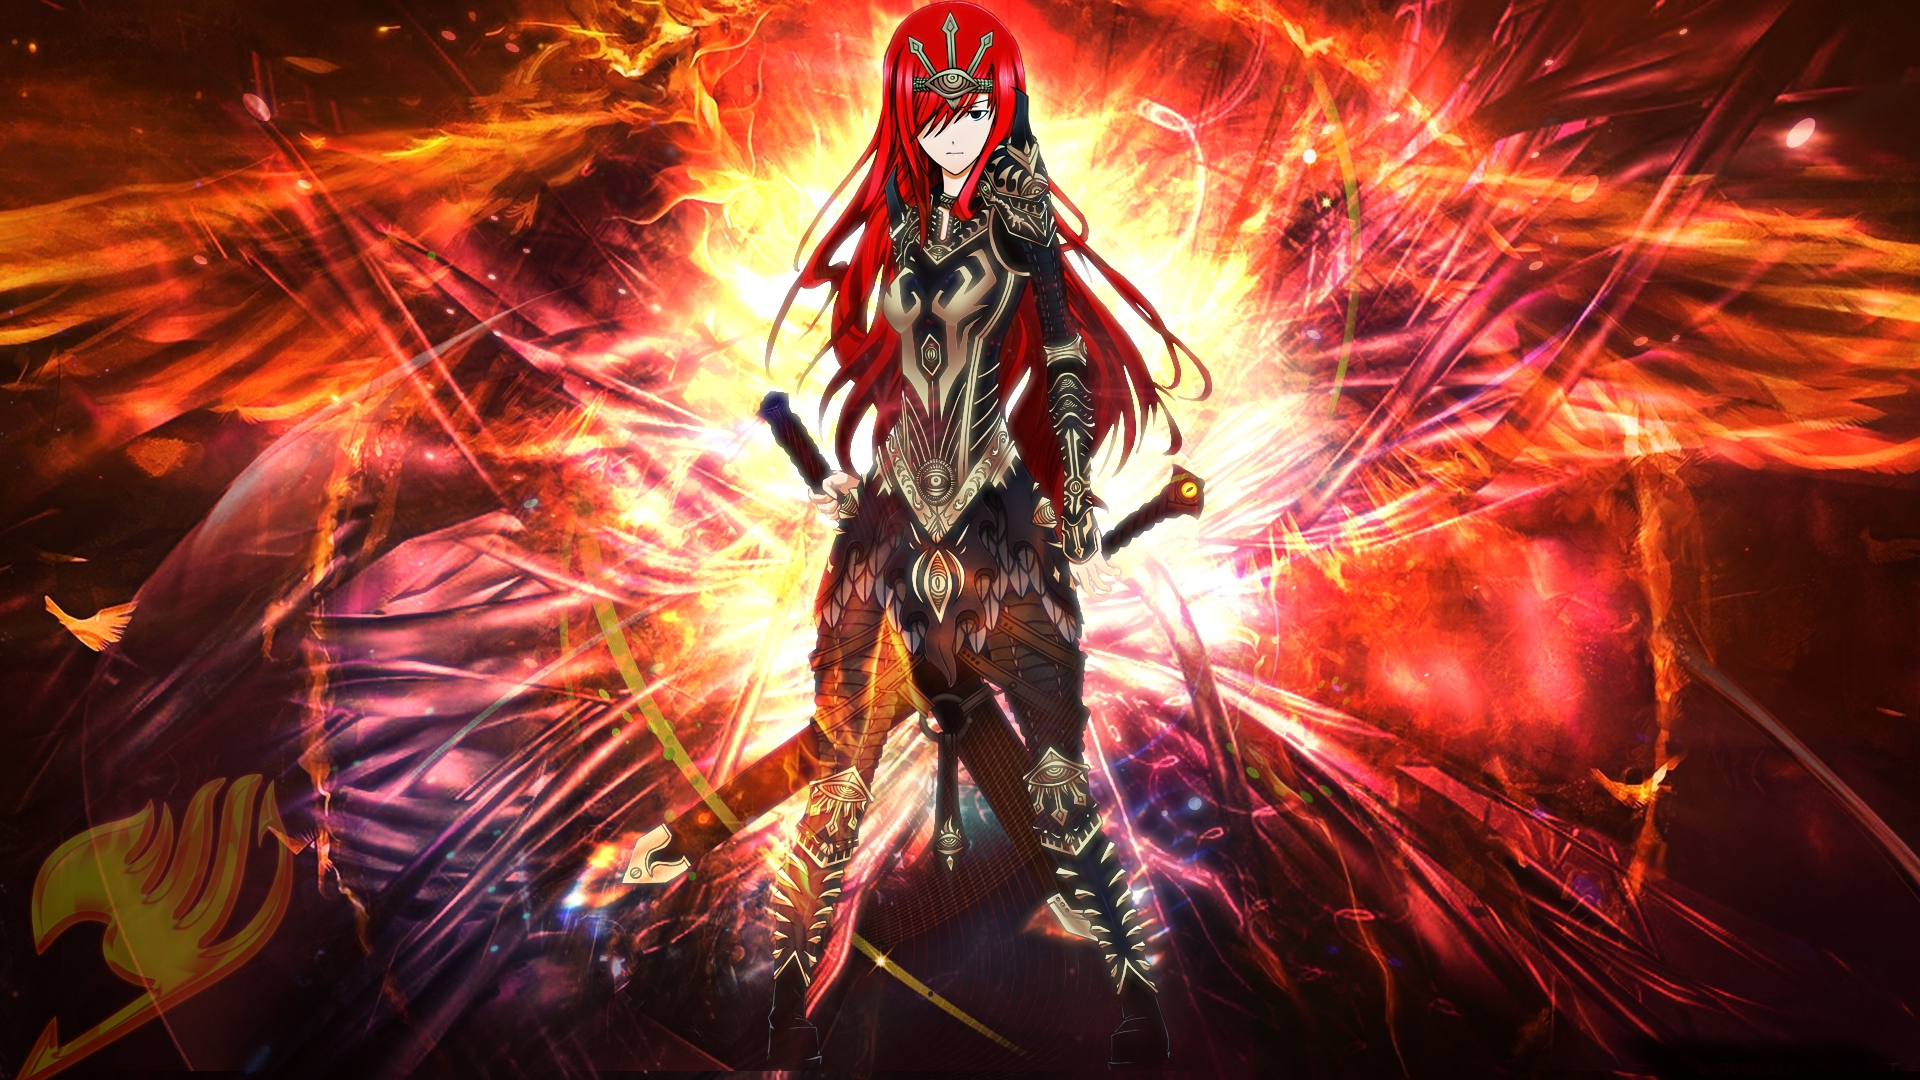 Erza scarlet wallpapers images photos pictures backgrounds - Image fairy tail erza ...